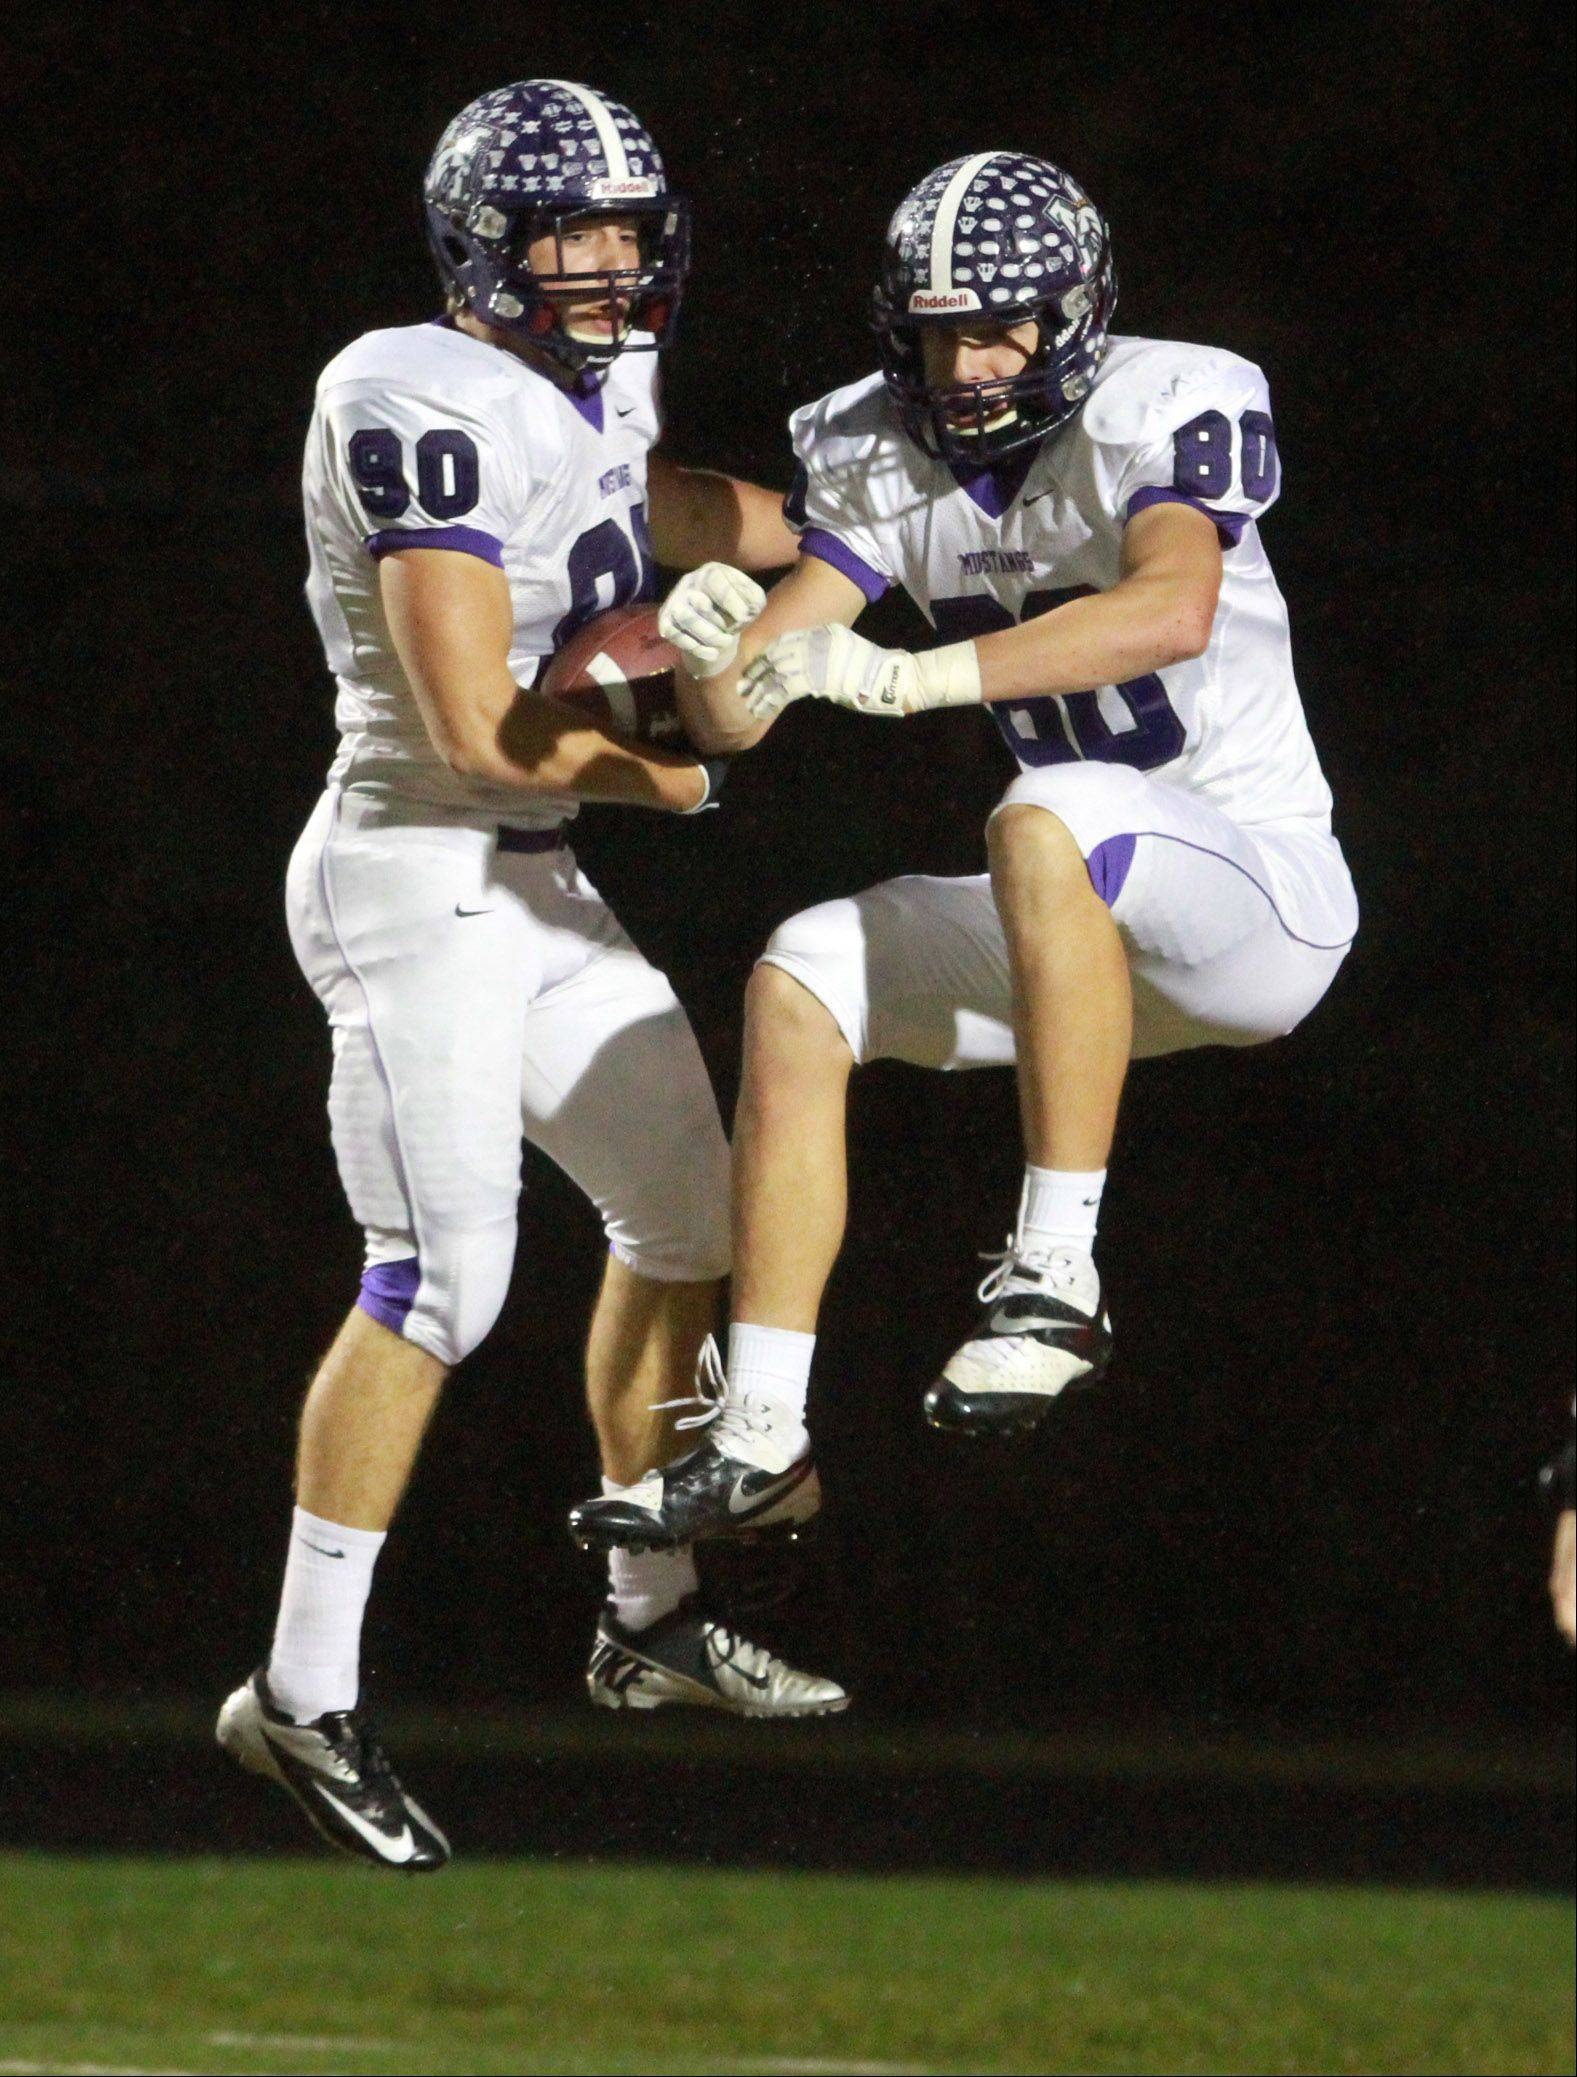 Rolling Meadows' wide-receiver Matt Campbell, left, celebrates scoring the first touchdown of the game against Grayslake North with teammate Matt Dolan.